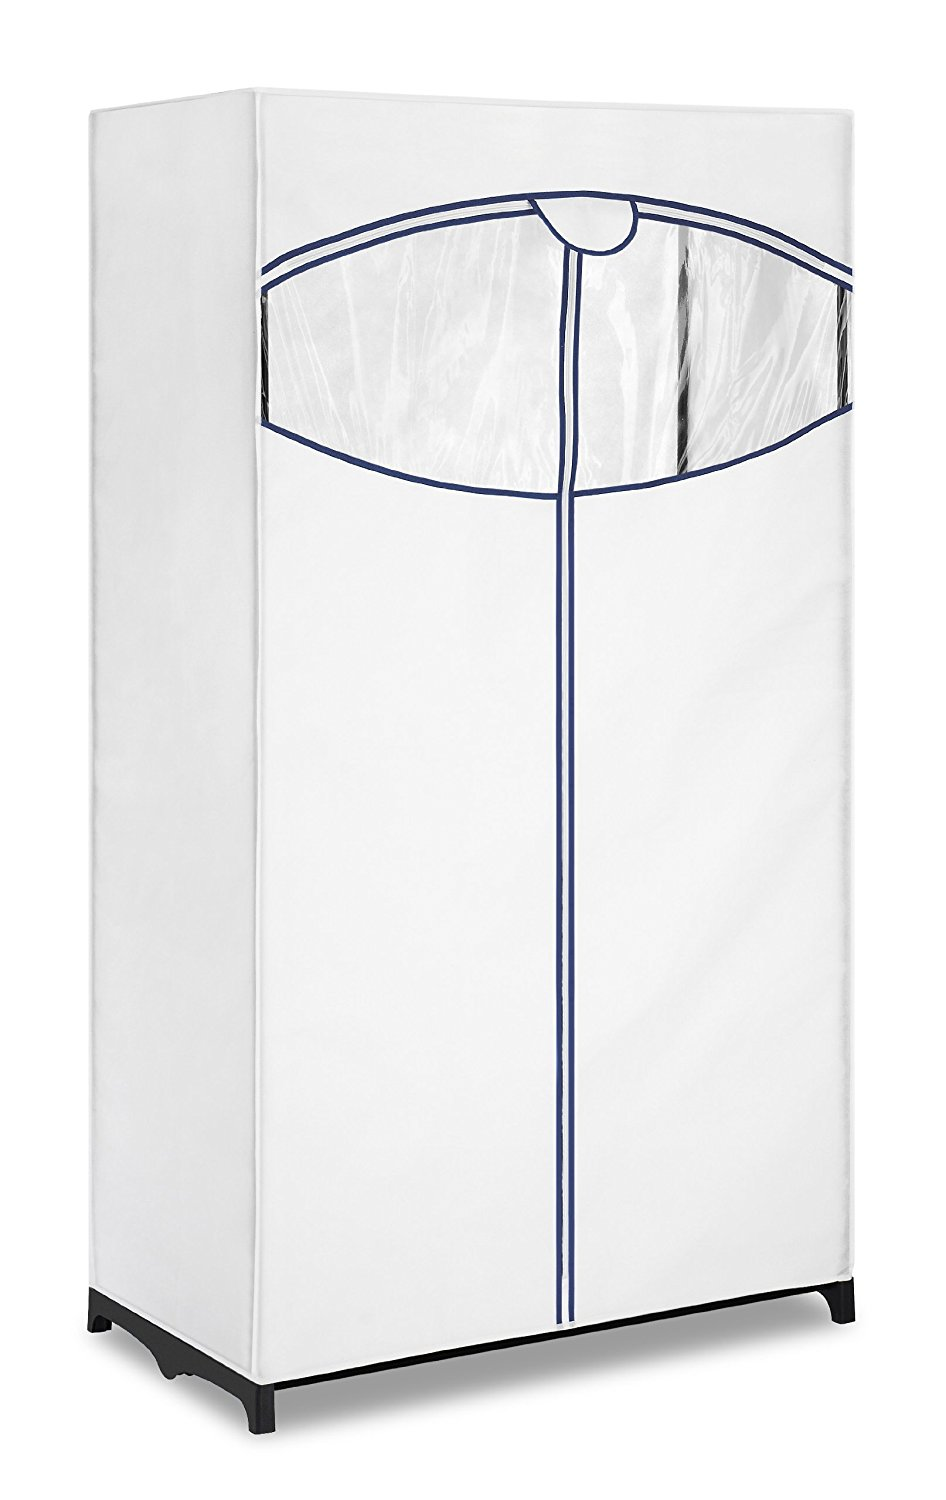 Freestanding Garment Organizer with White... Whitmor Extra Wide Clothes Closet